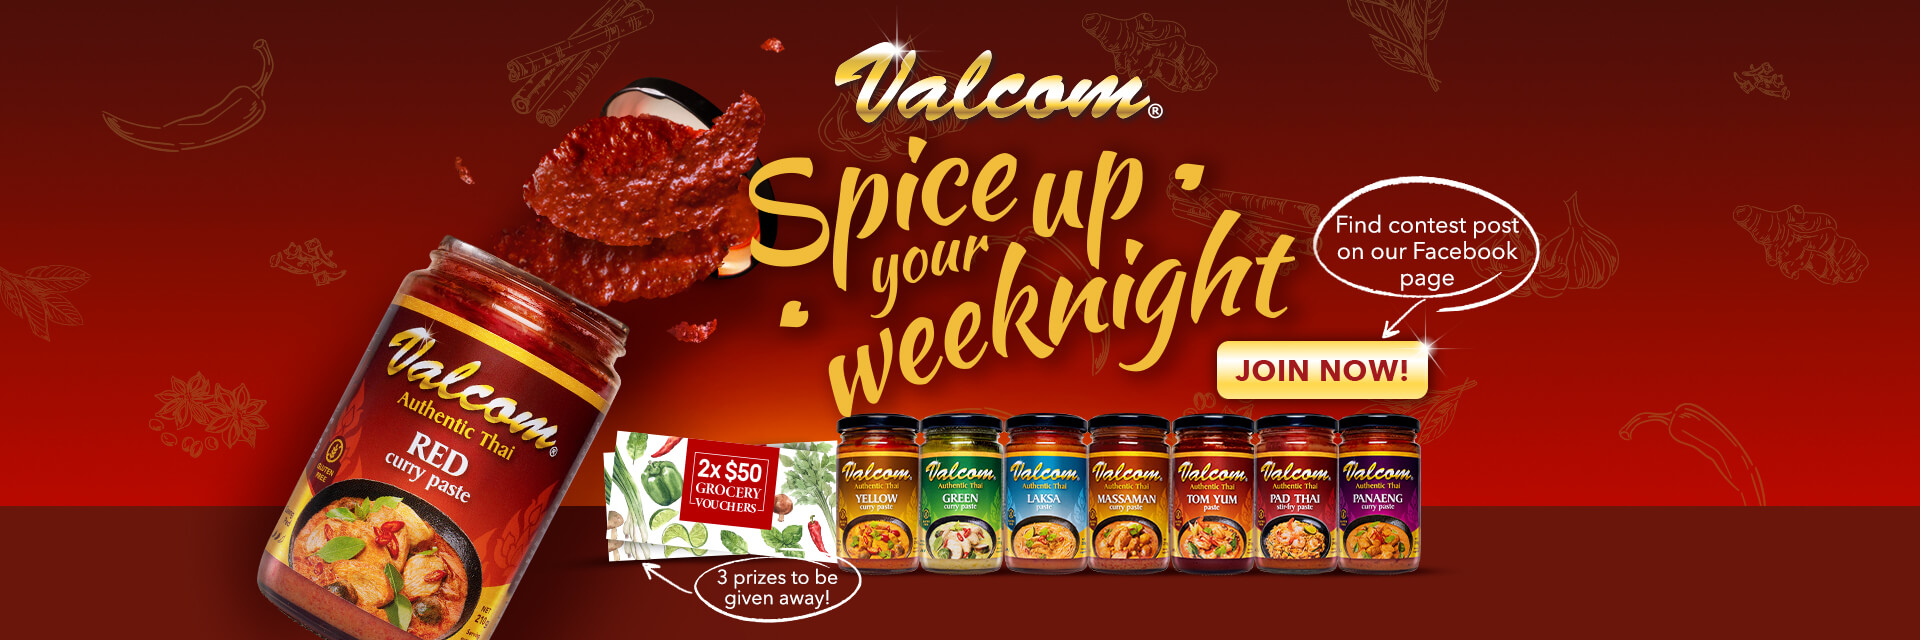 Valcom spice up your weeknight